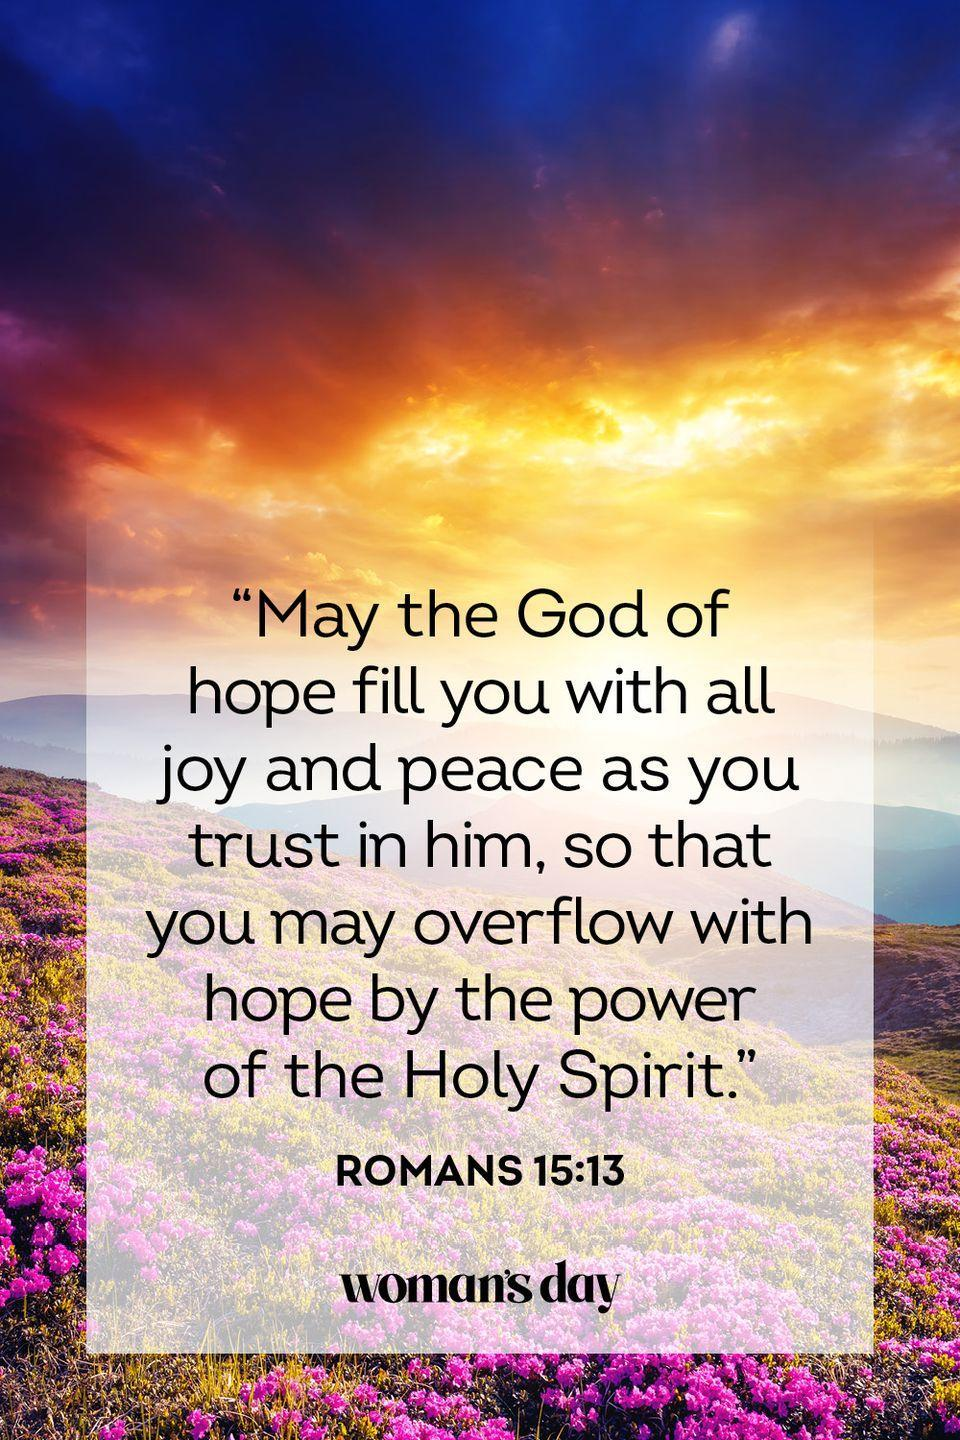 "<p>""May the God of hope fill you with all joy and peace as you trust in him, so that you may overflow with hope by the power of the Holy Spirit.""</p><p><strong>The Good News: </strong>If you allow it, the Holy Spirit can provide strength when you are lacking it. </p>"